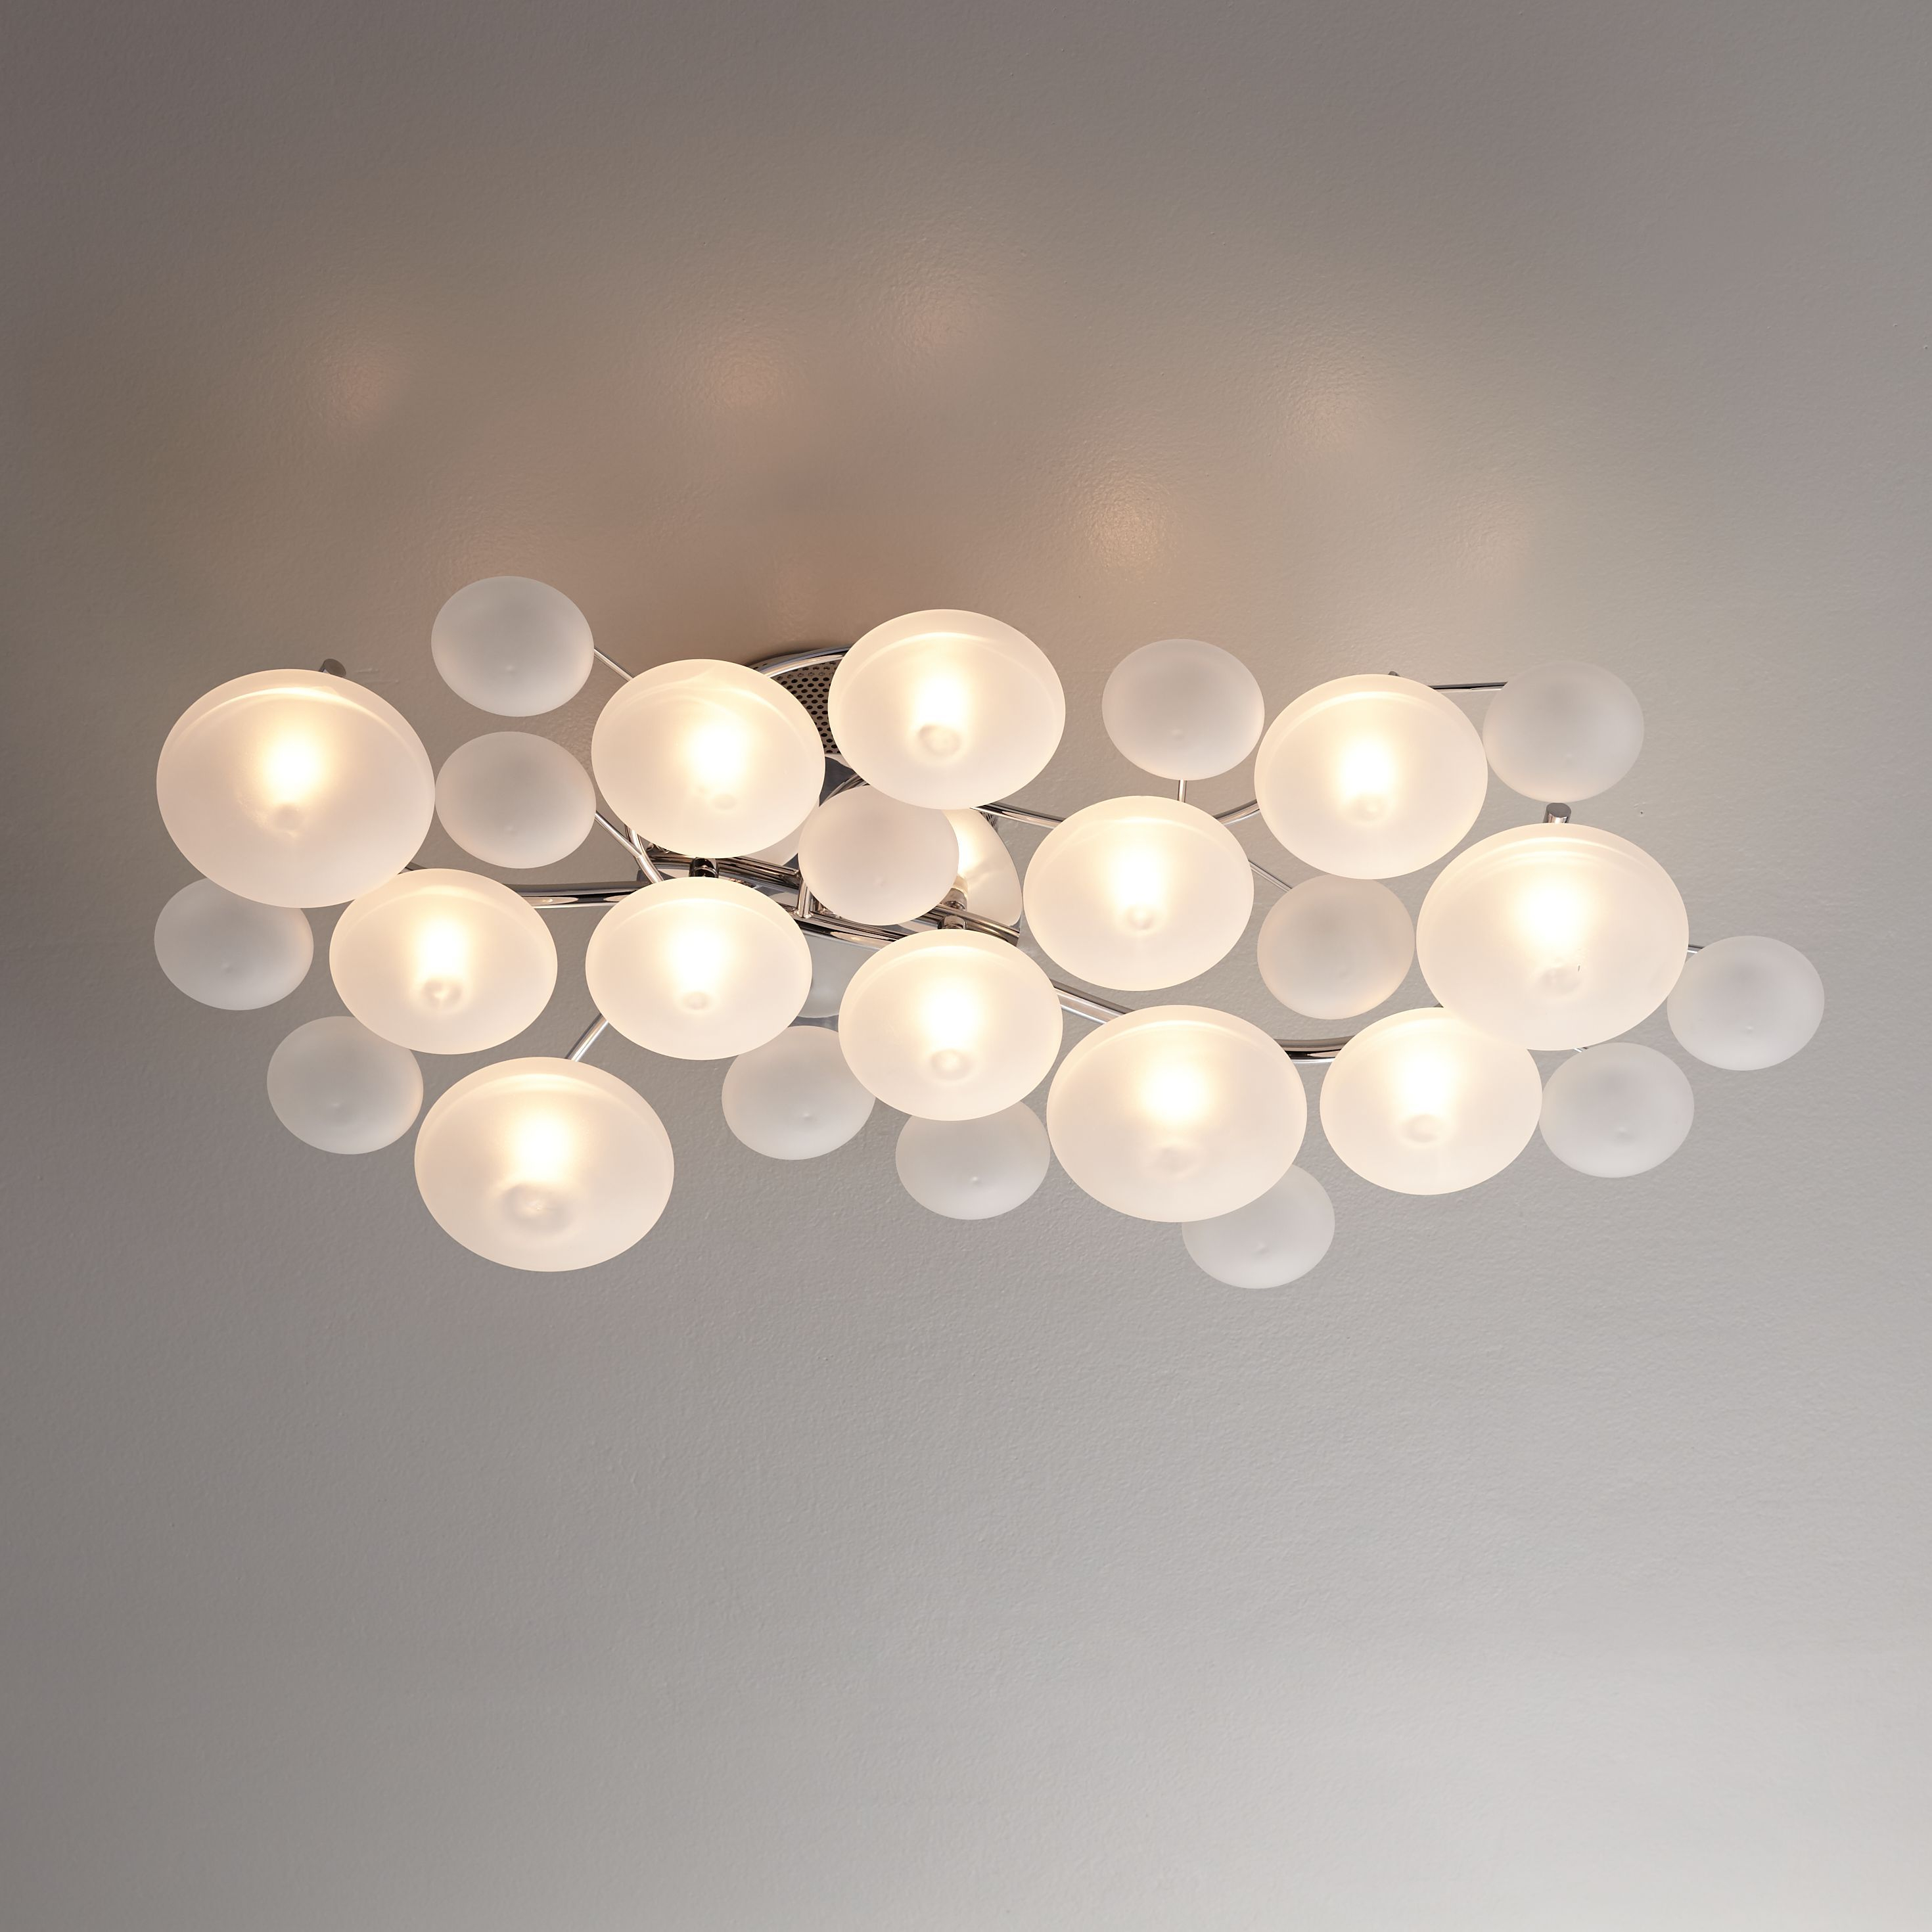 Lilypad Etched Modern Possini Euro Ceiling Light Fixture For The within 11 Some of the Coolest Initiatives of How to Build Modern Bedroom Ceiling Light Fixtures